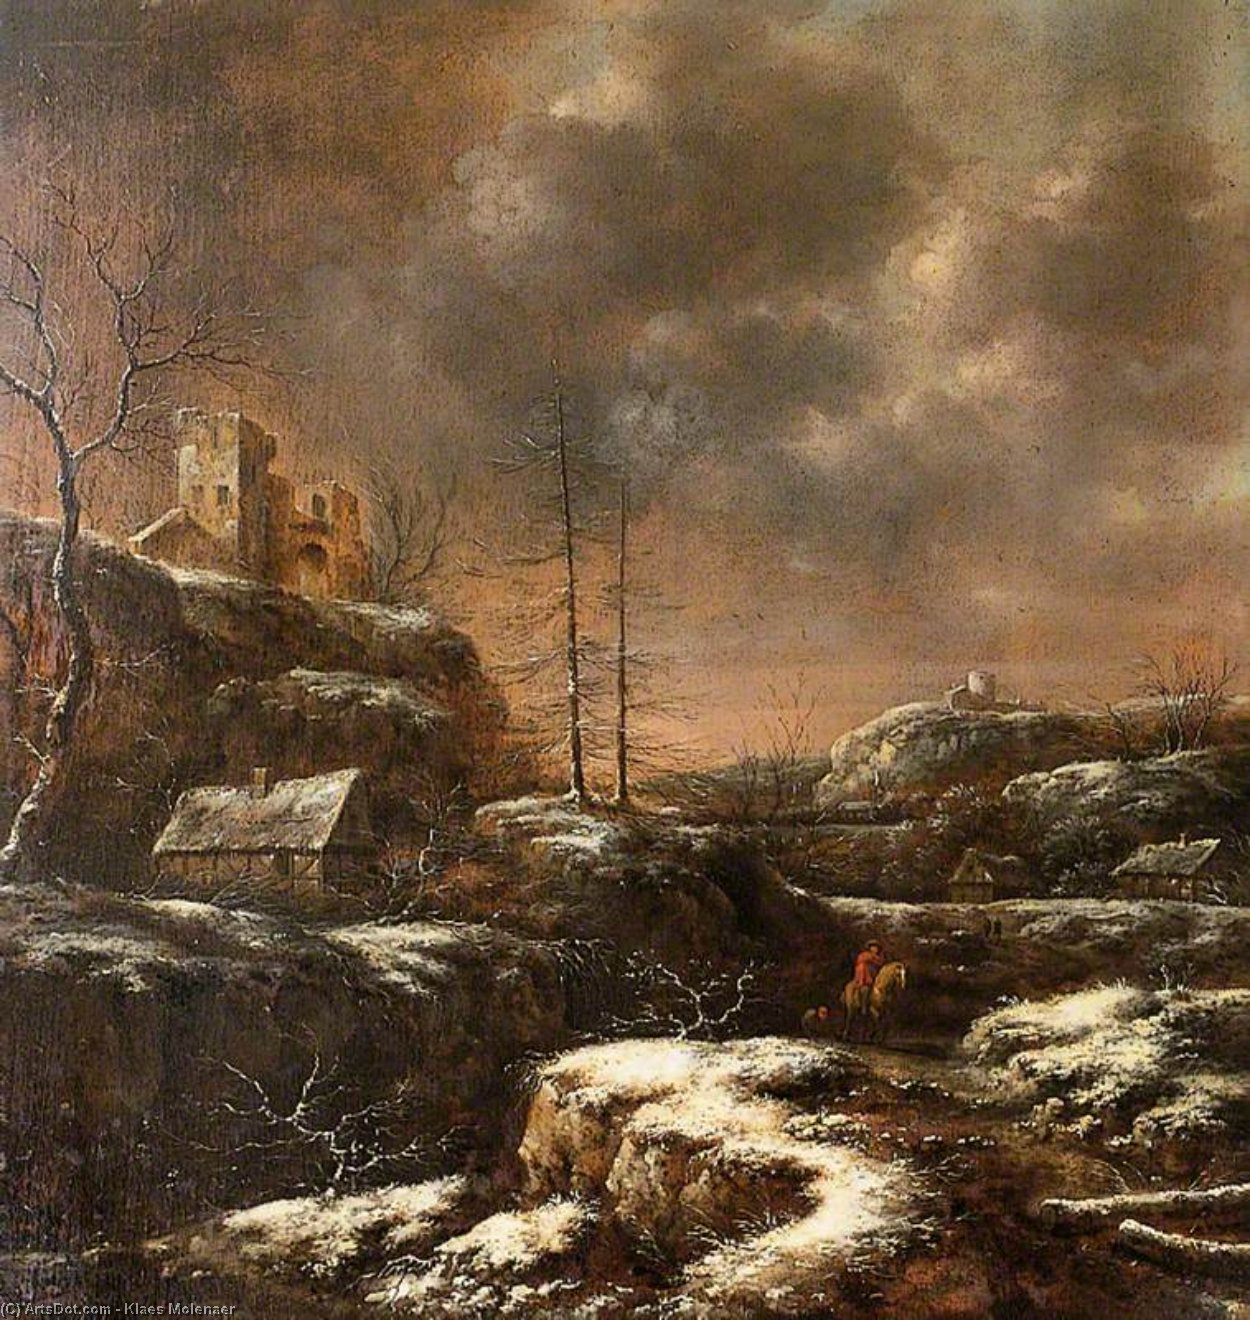 Winter Scene by Klaes Molenaer (1629-1676, Netherlands)